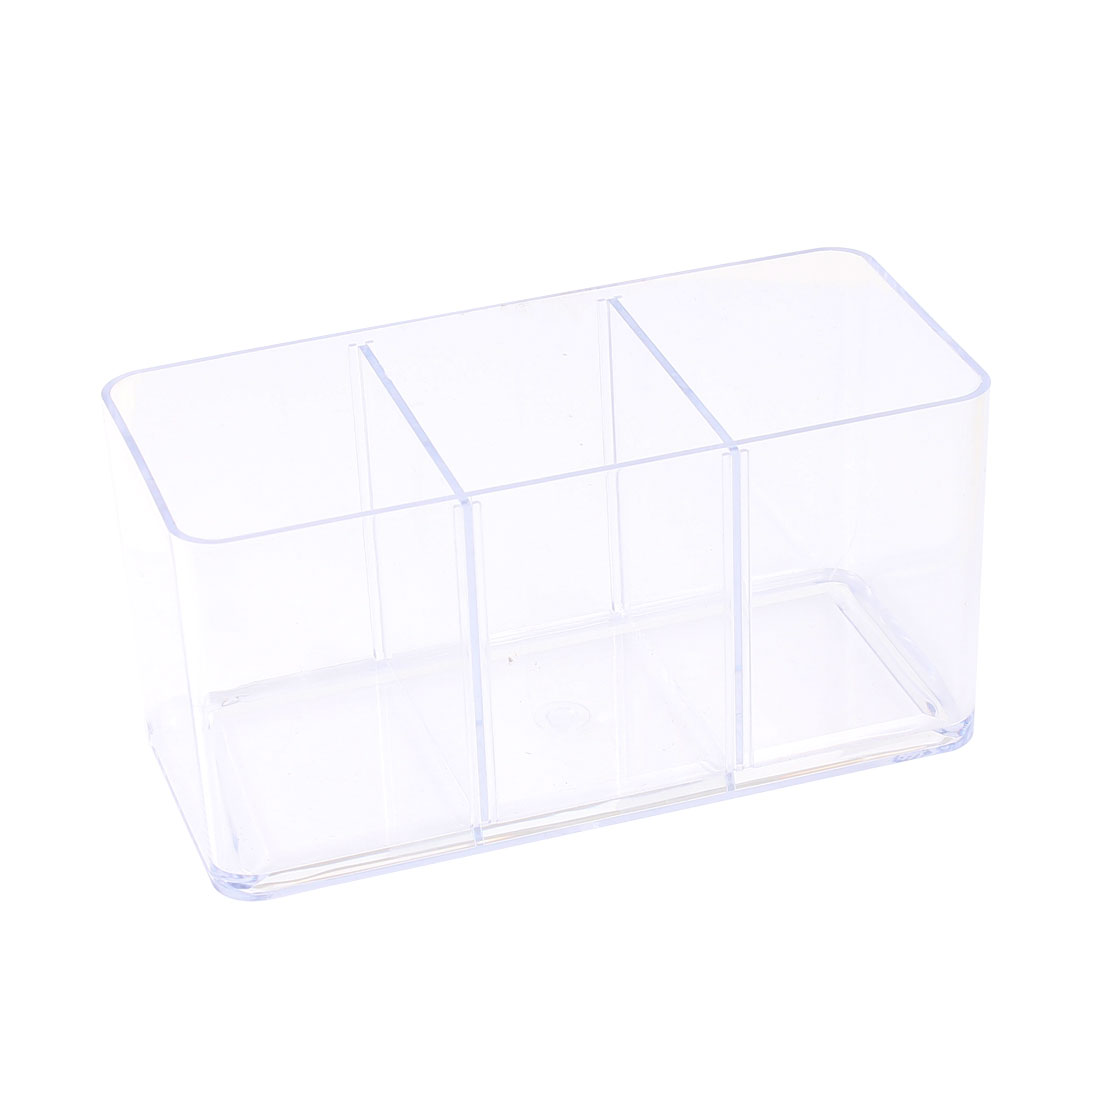 Acrylic Rectangle Shaped Betta Clear 16.5x7.5x 8.5cm for Fish Tank Aquarium